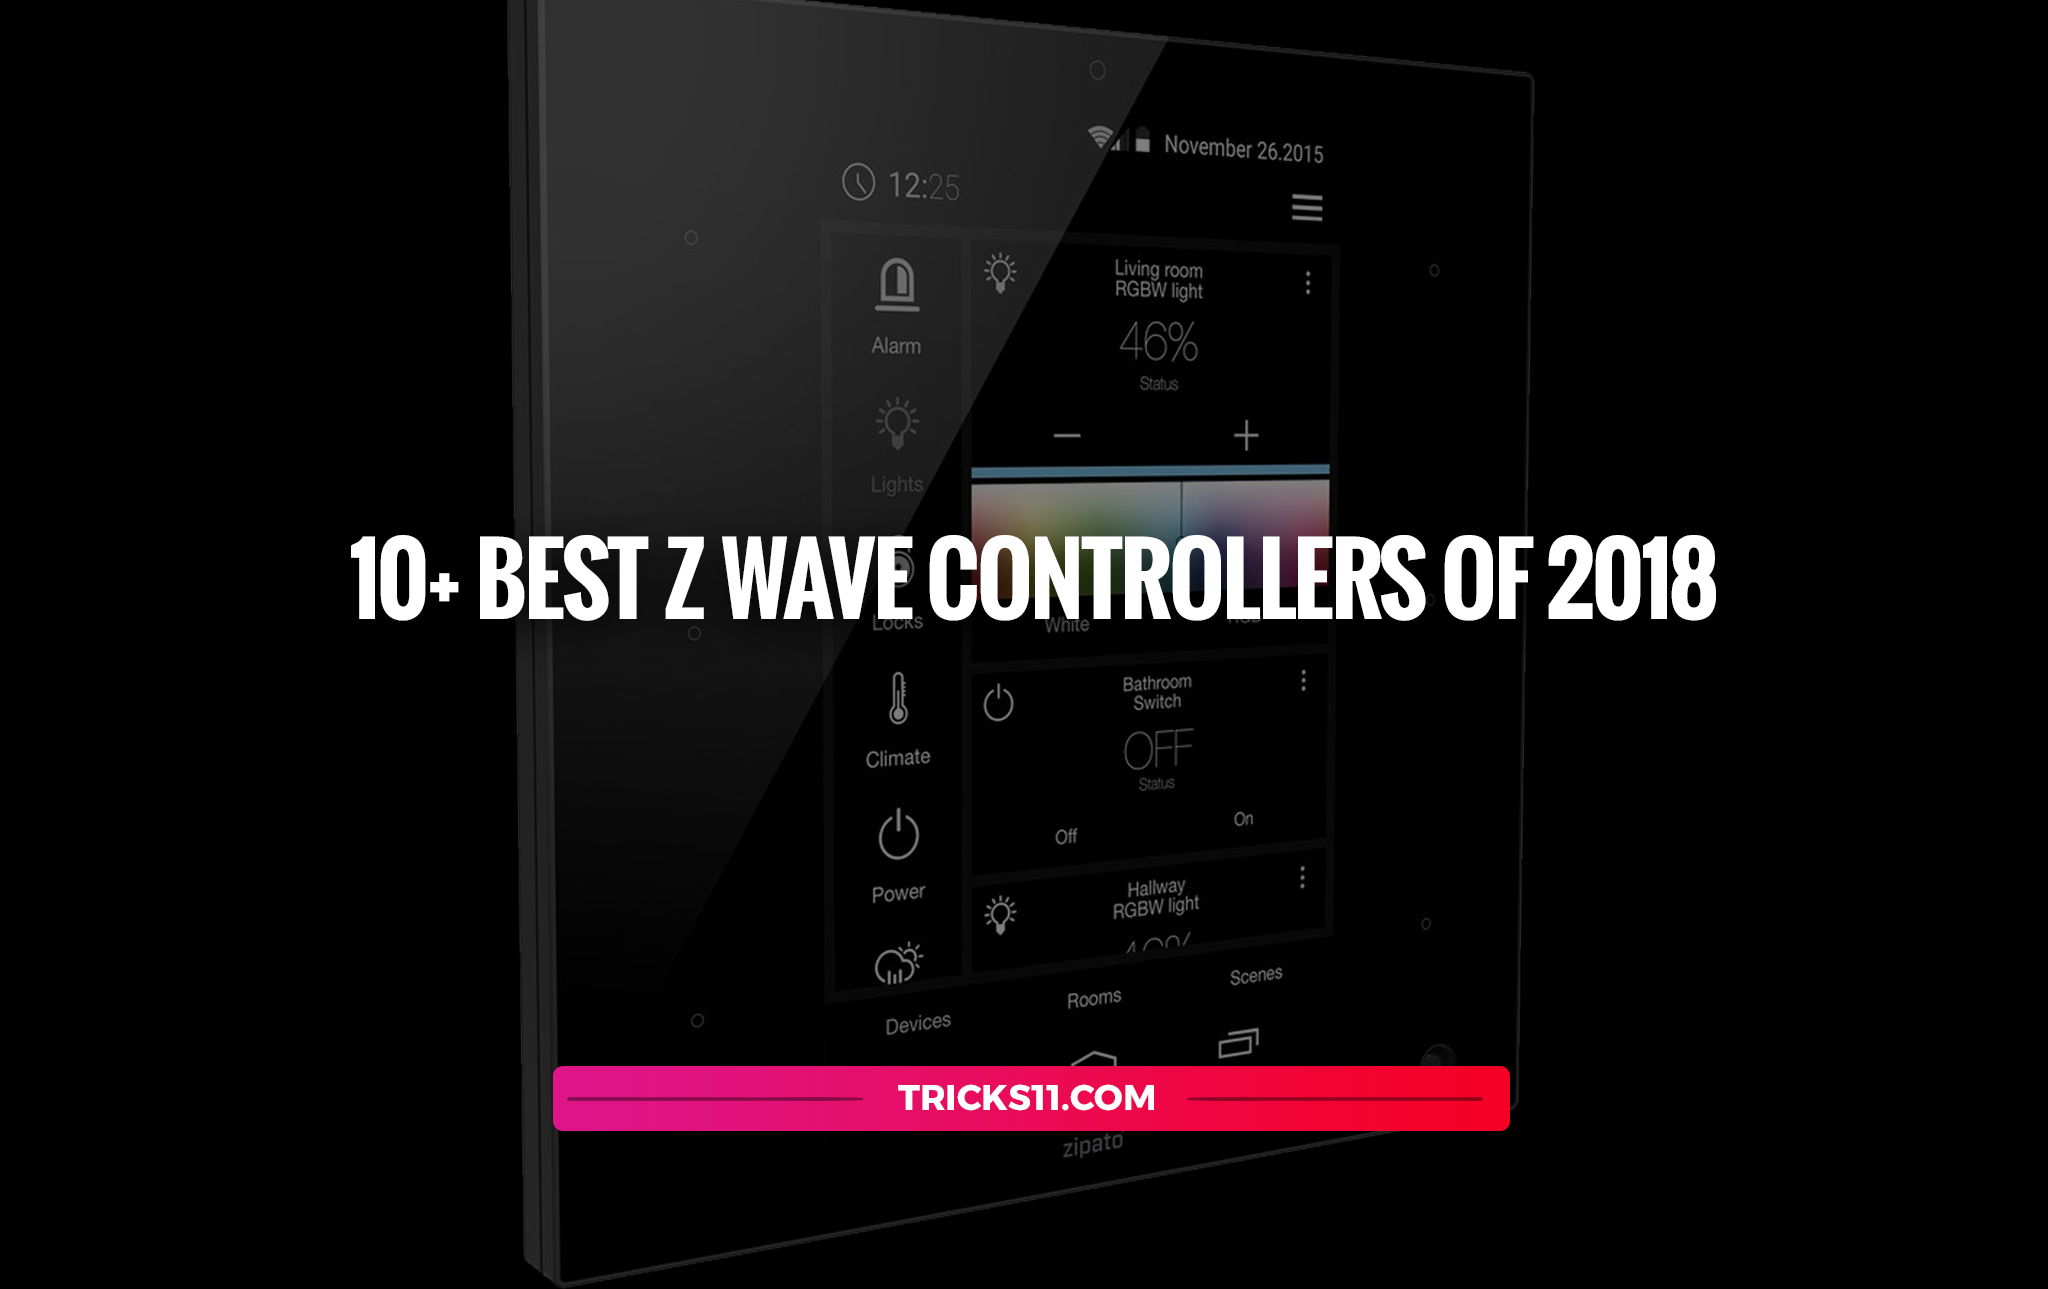 10 Best Z Wave Controllers Of 2018